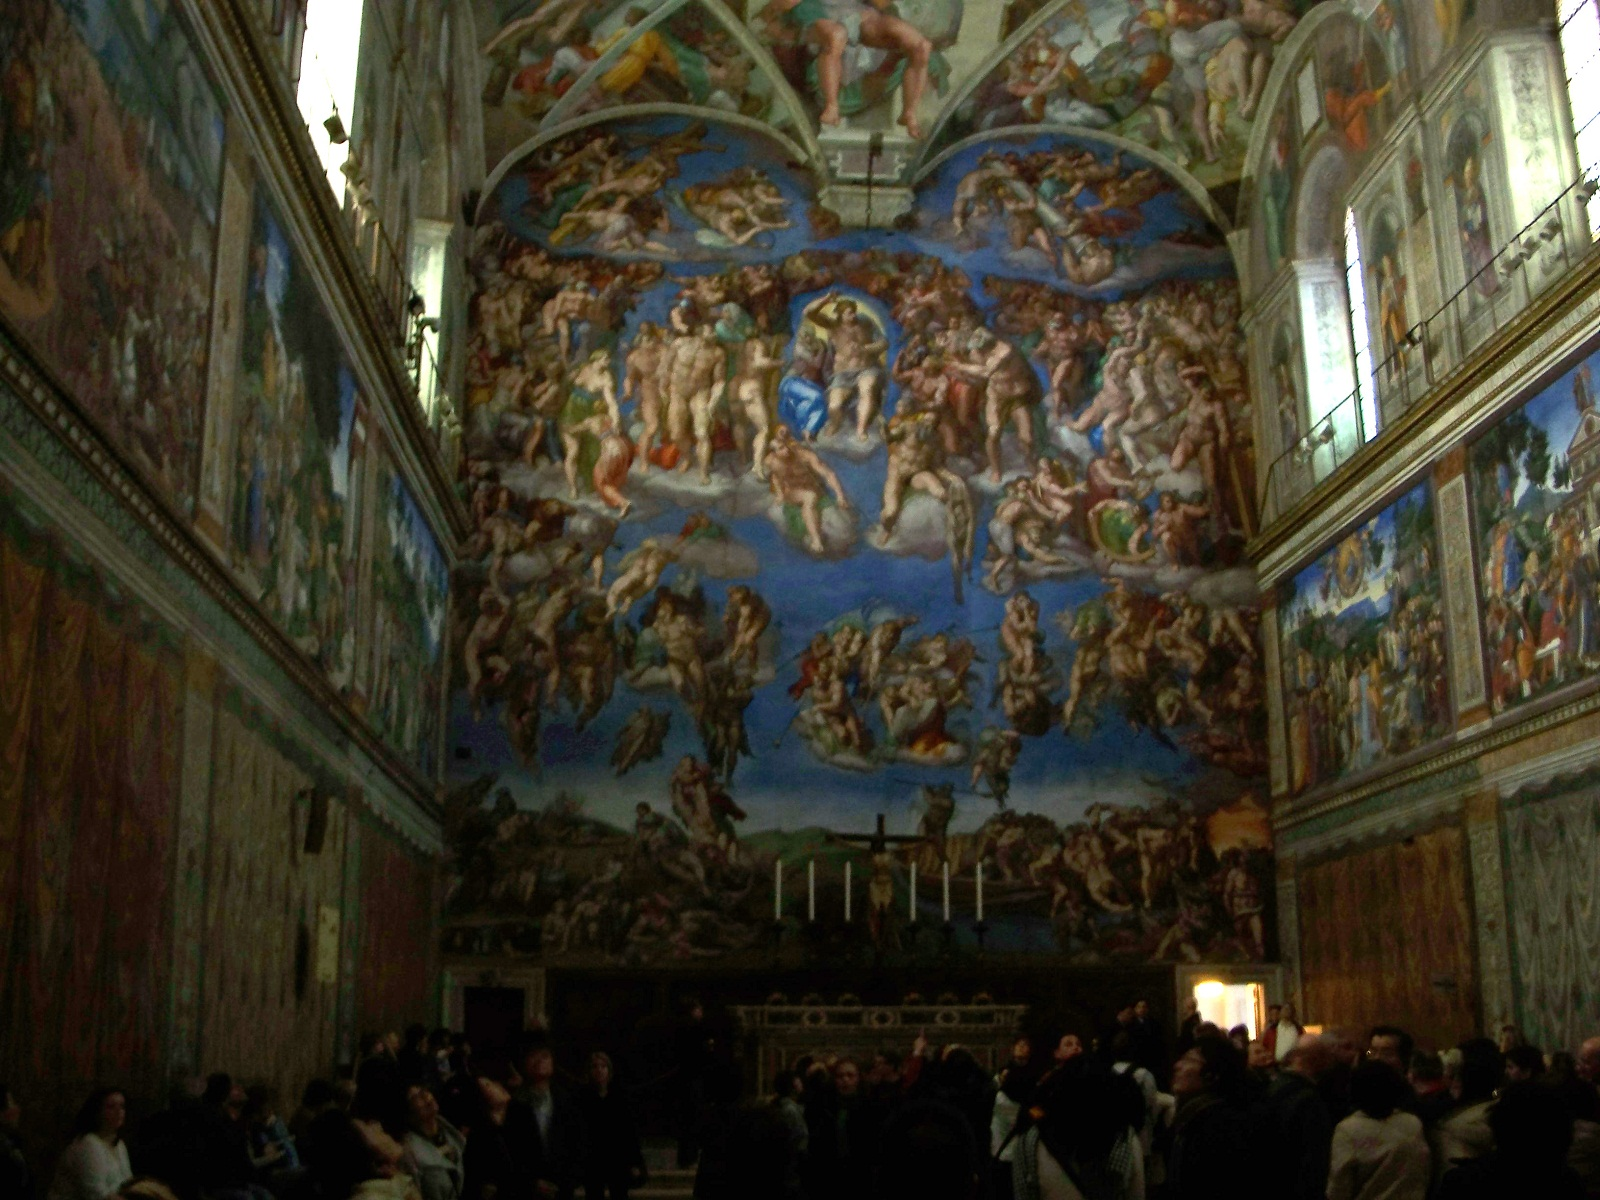 Sistine Chapel, Vatican, Michelangelo fresco, The Last Judgment